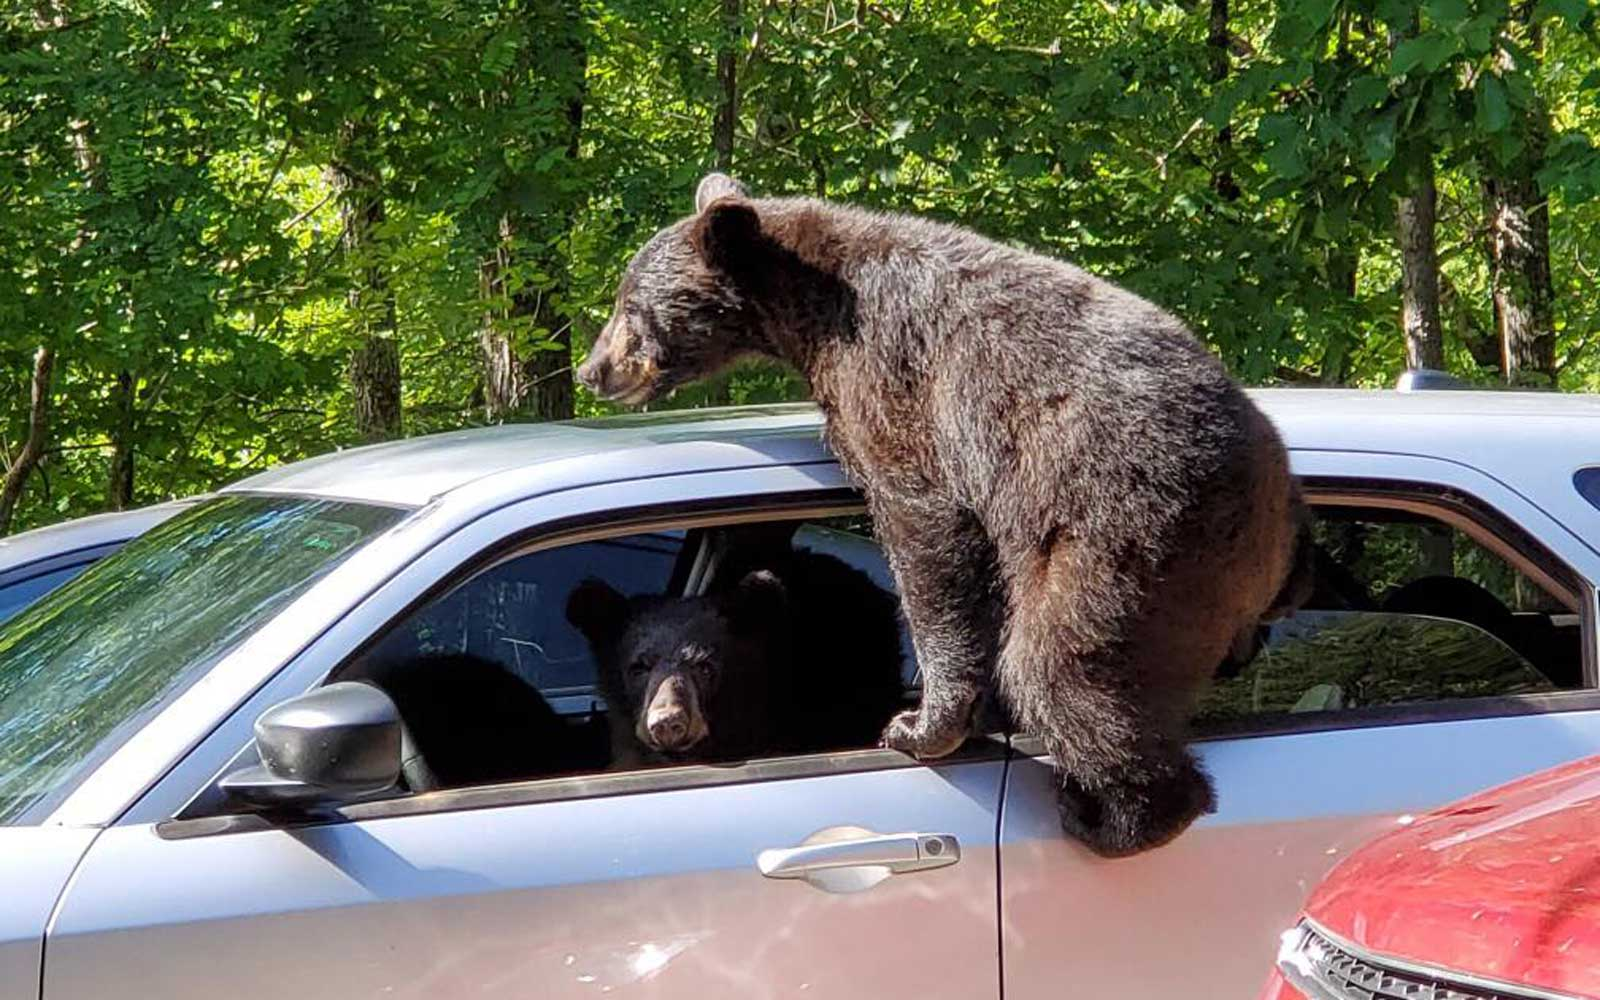 Bears climb in car in Gatlinburg, TN